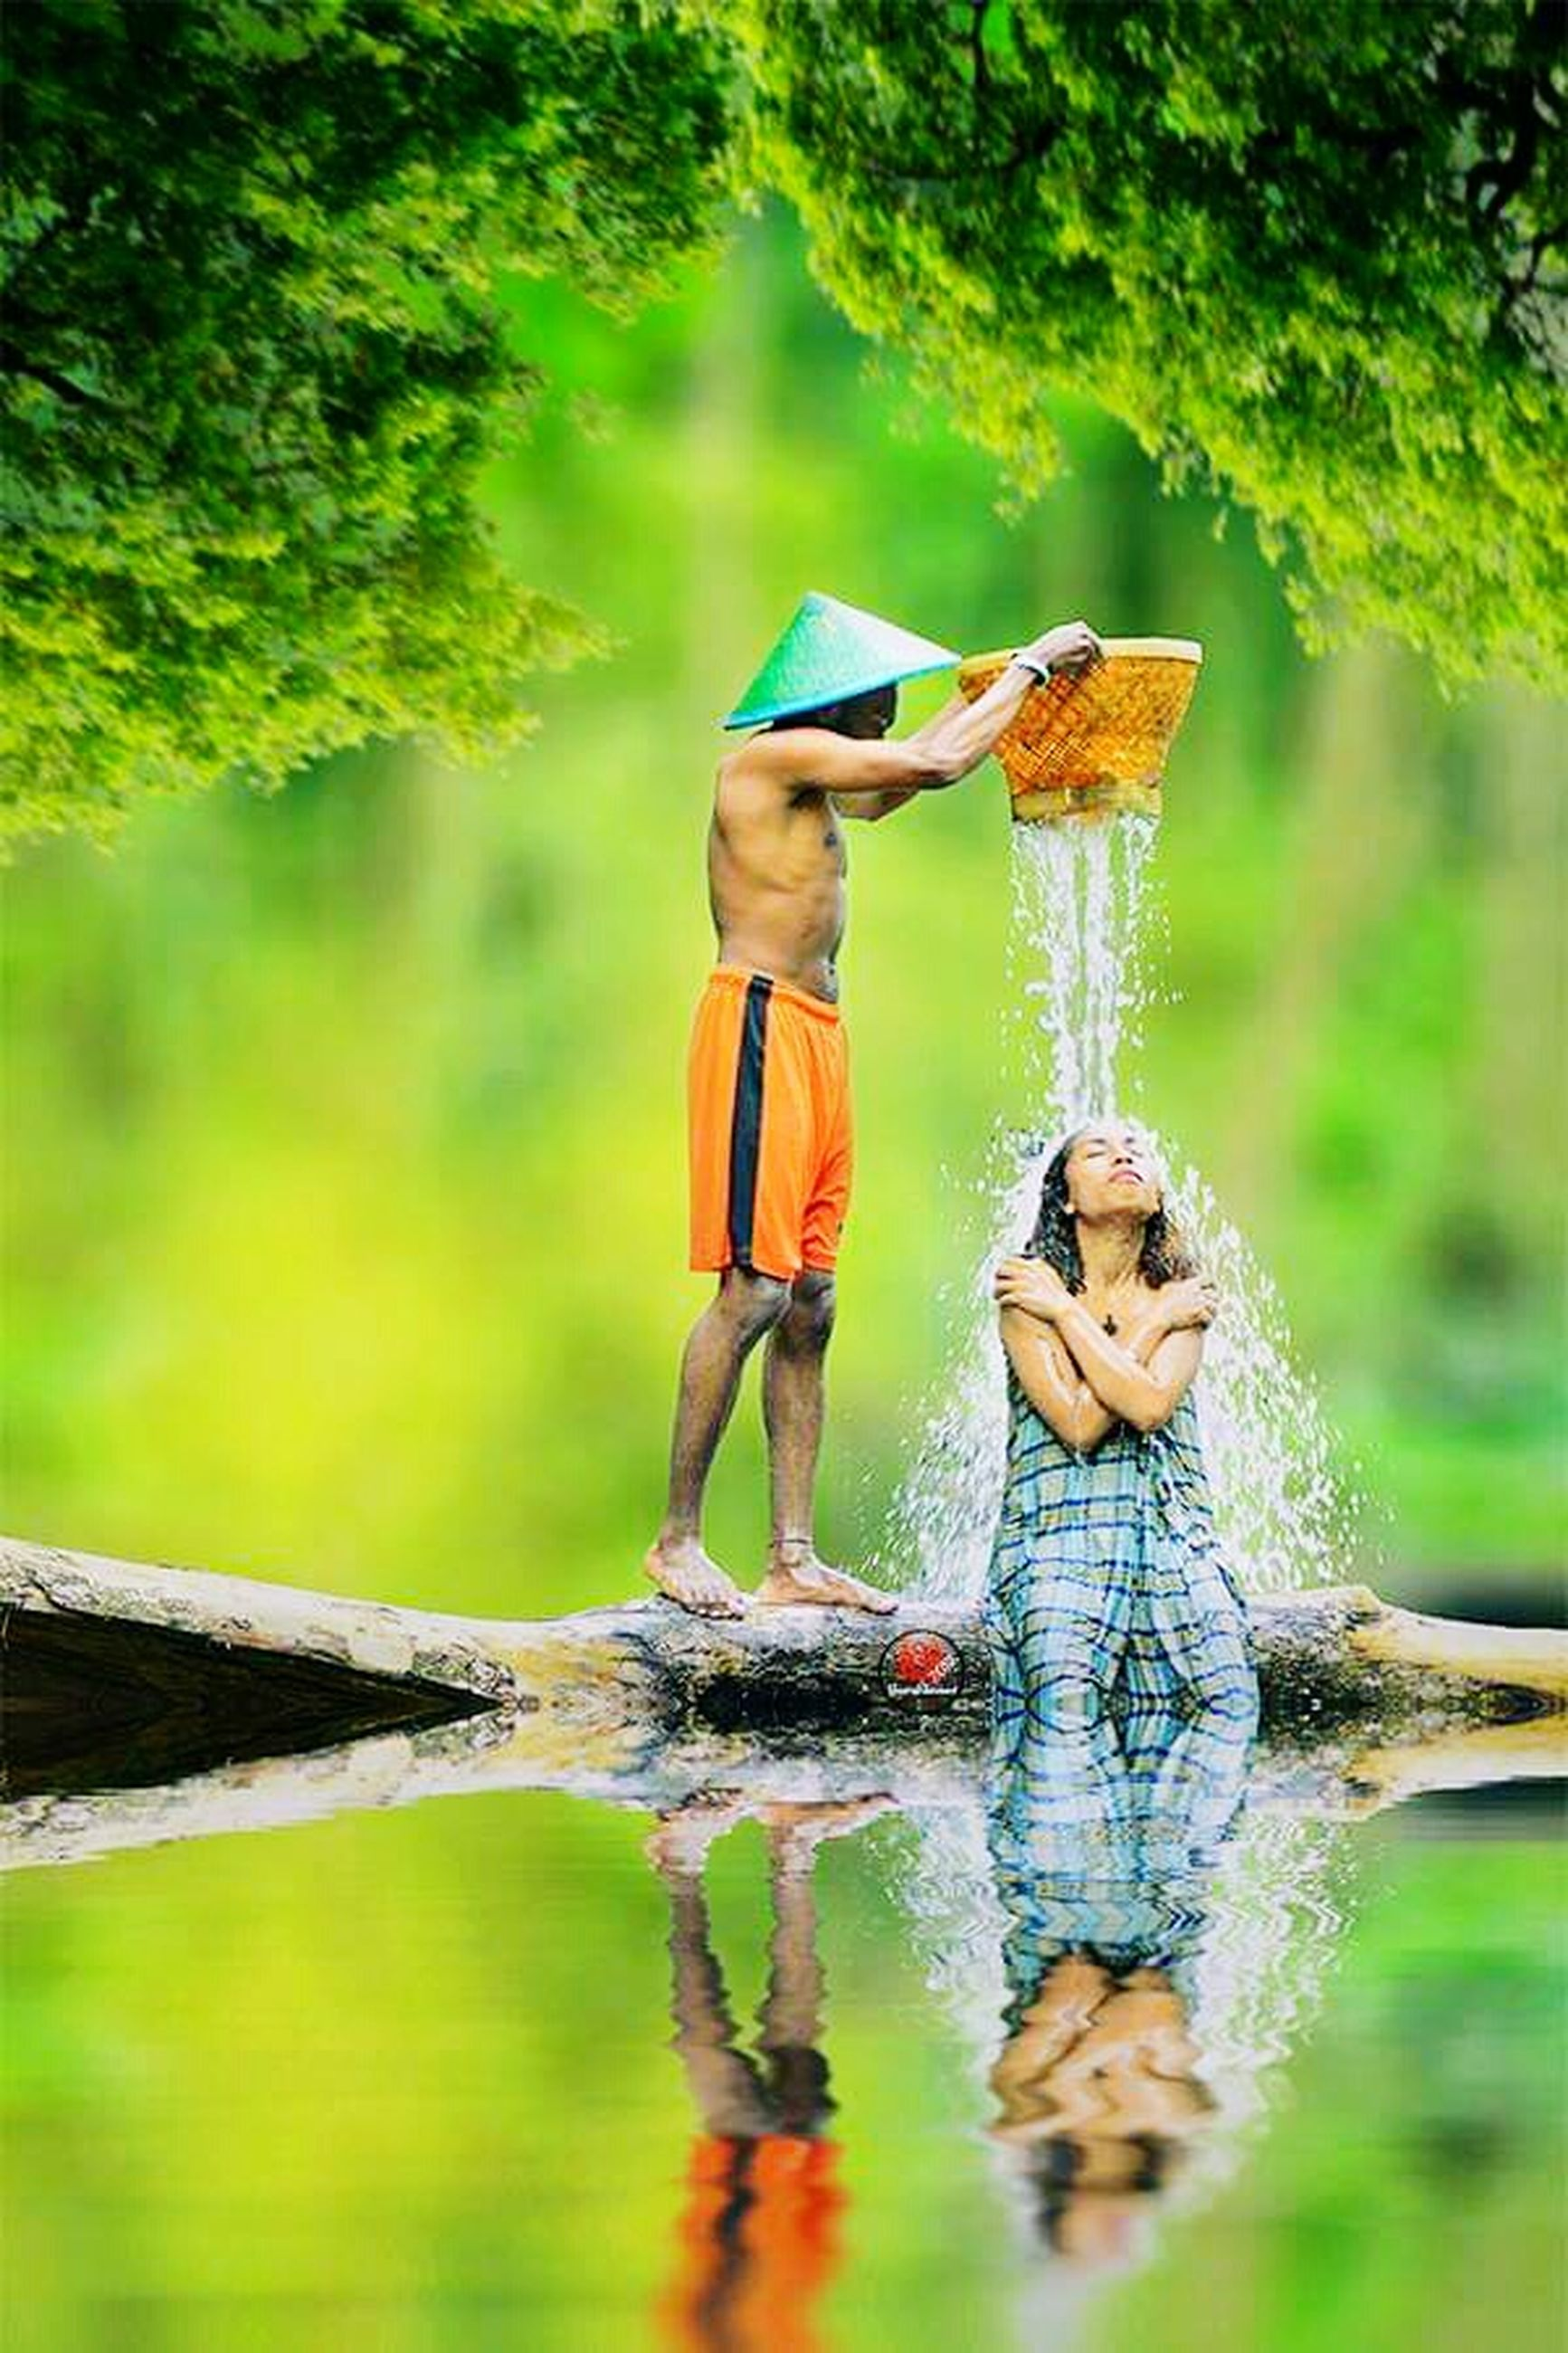 water, child, childhood, nature, tree, offspring, men, males, wet, people, forest, summer, boys, togetherness, beauty in nature, playing, green color, holding, outdoors, small, positive emotion